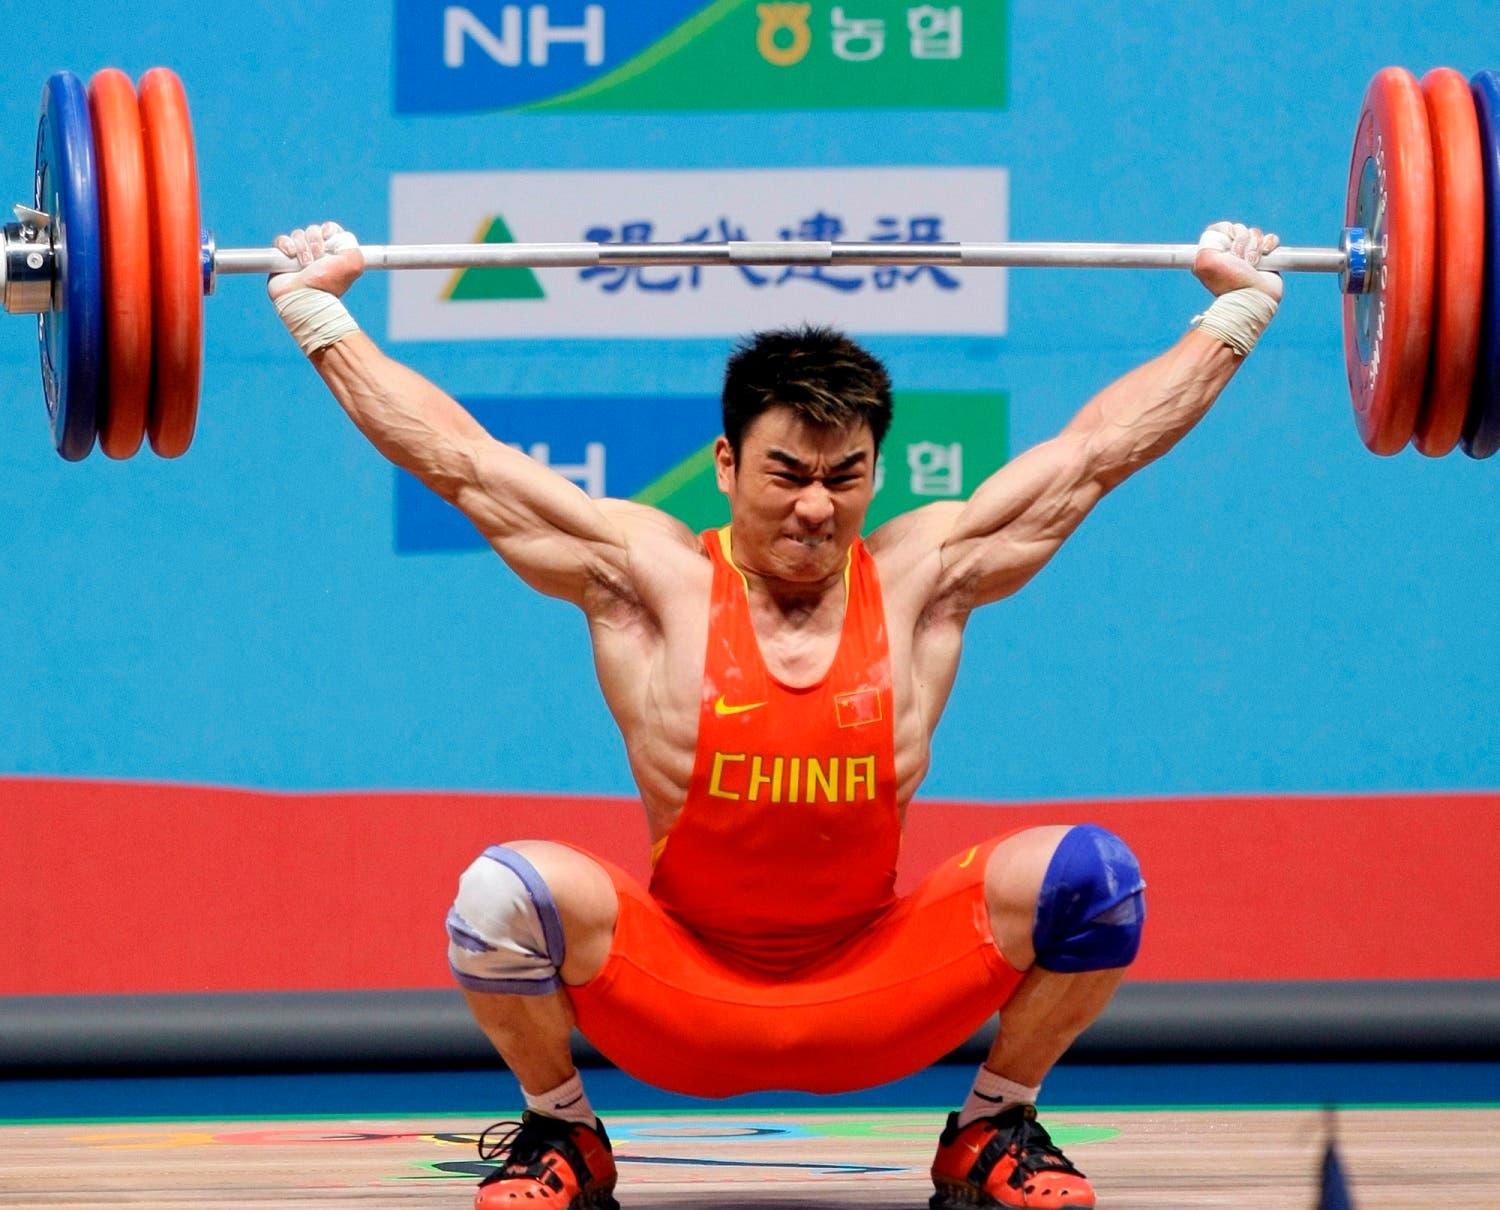 China's Liao Hui competes in the snatch during the men's group A 69-kilogram category of the World Weightlifting Championships in Goyang, west of Seoul, South Korea. (AP)